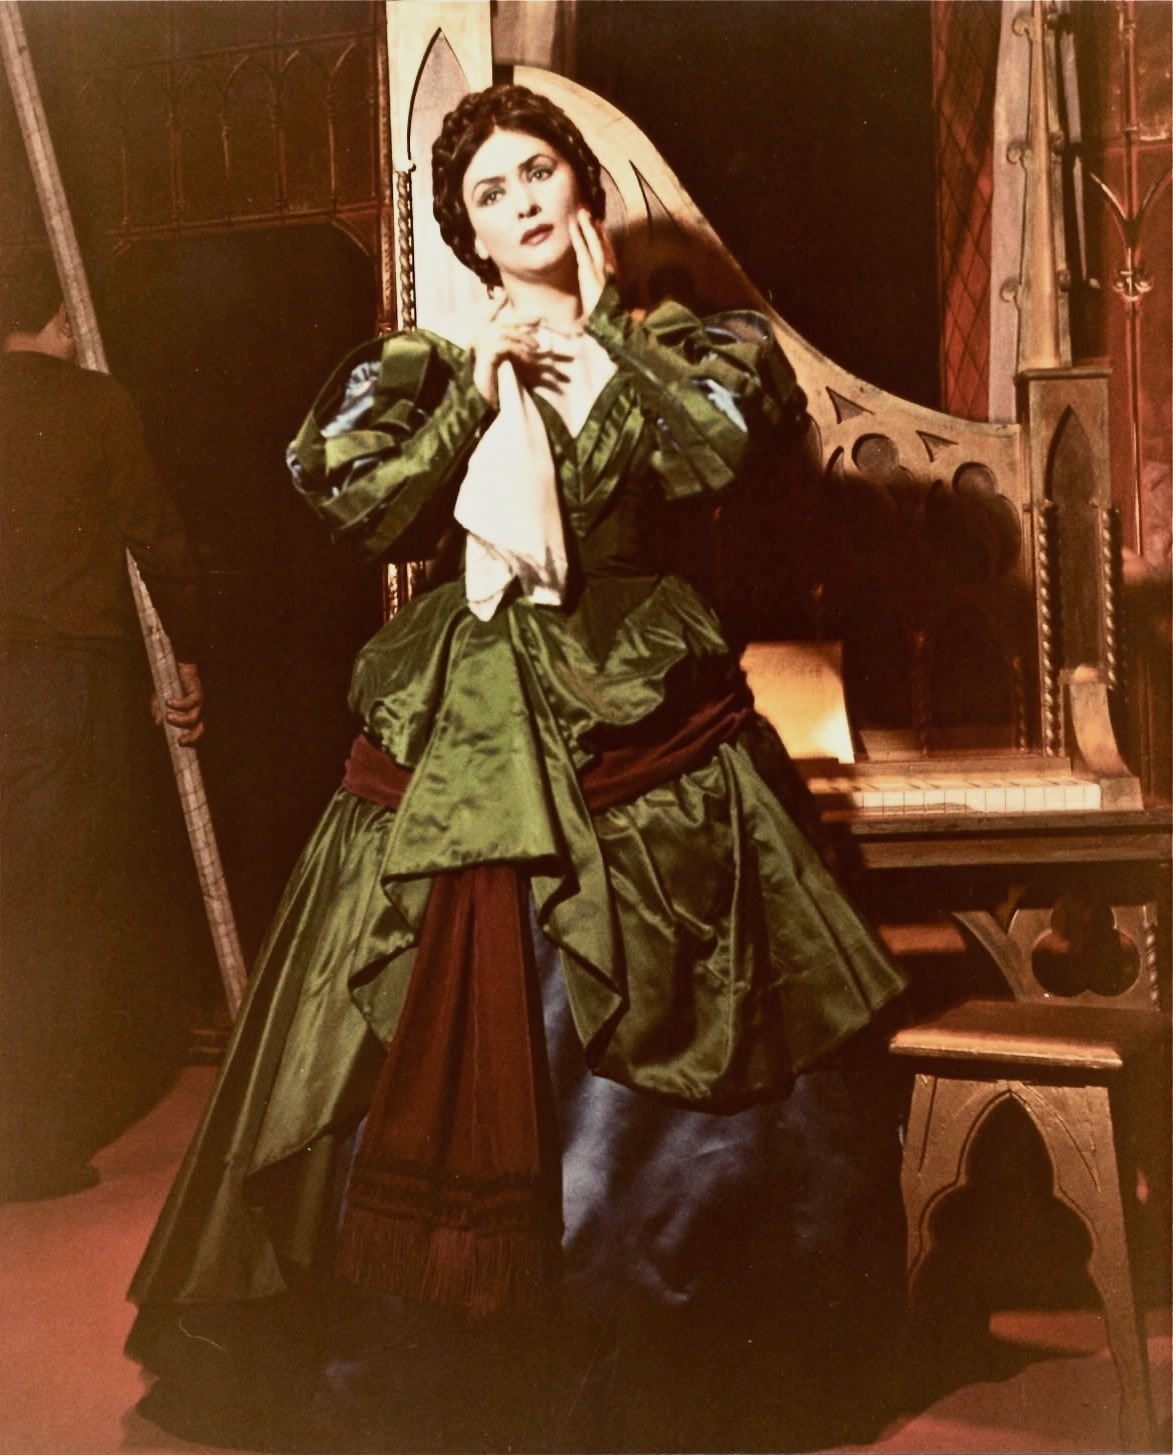 Antonia in TheTales of Hoffmann